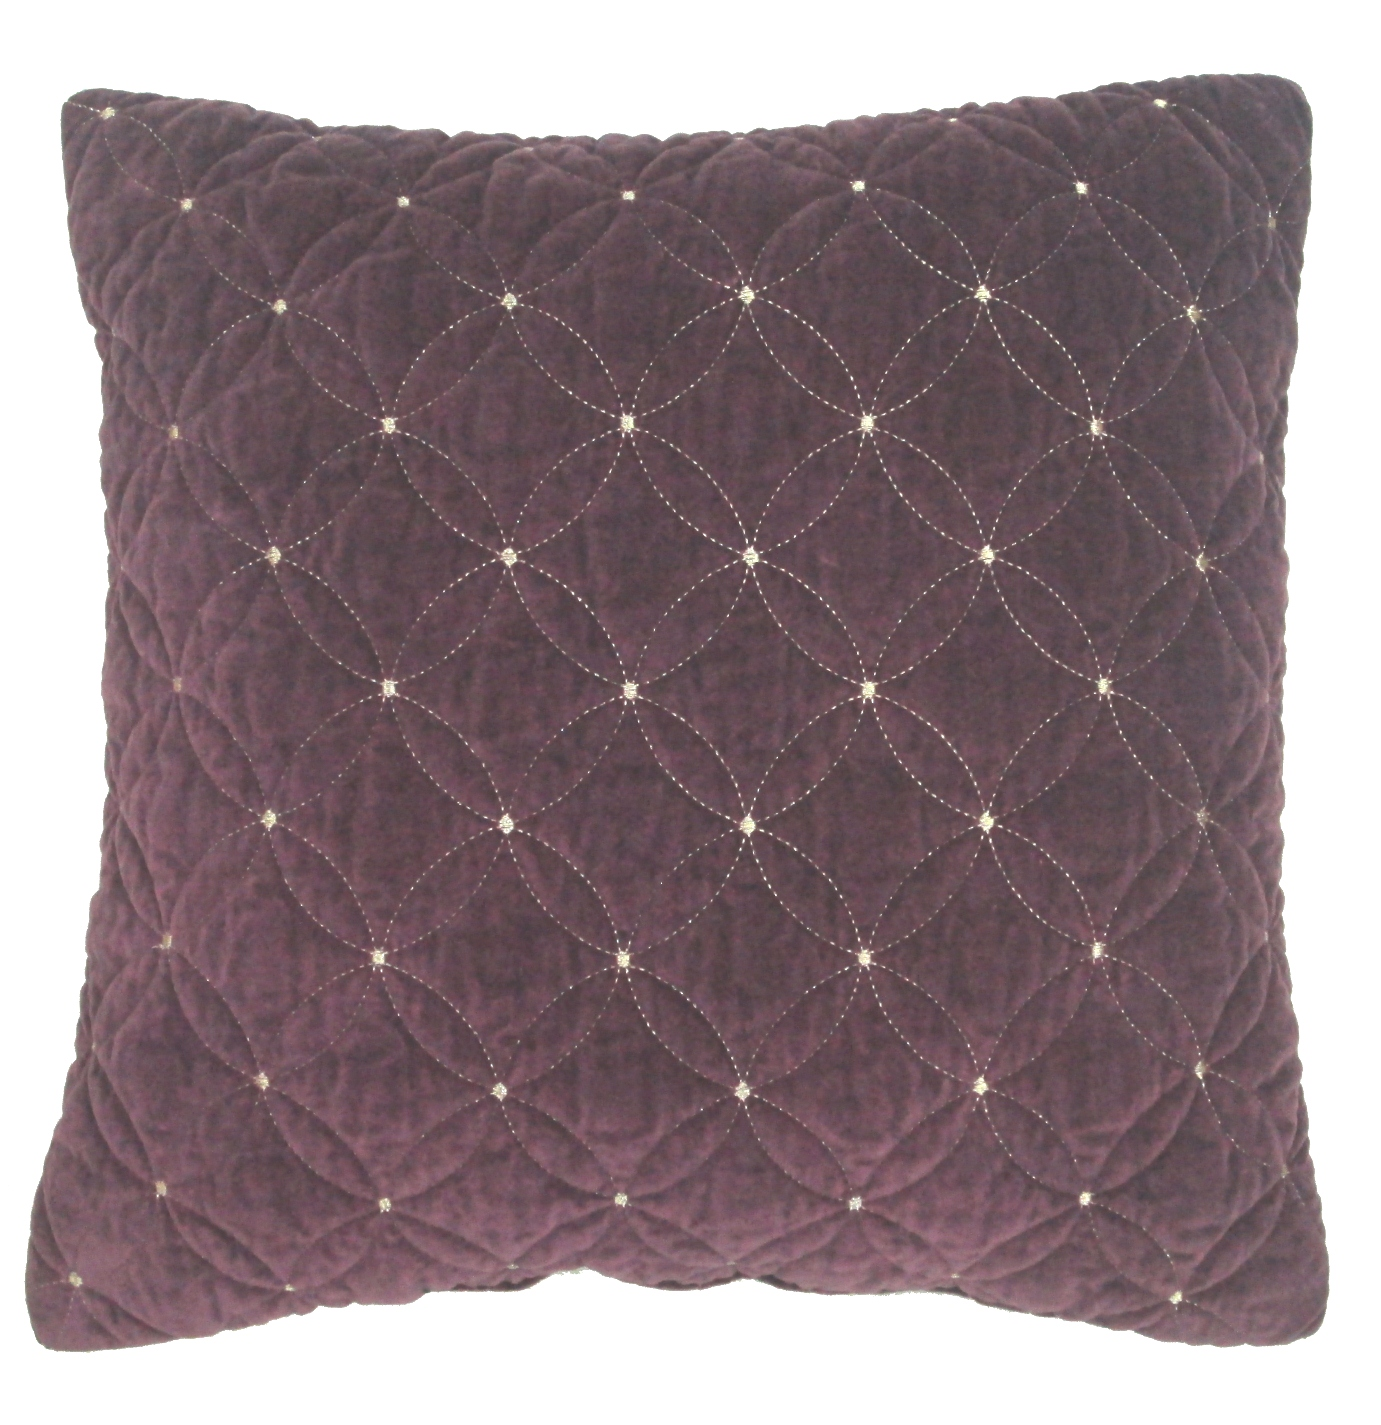 Decorative Pillows Kmart : Geometric Velvet Decorative Pillow - Kmart